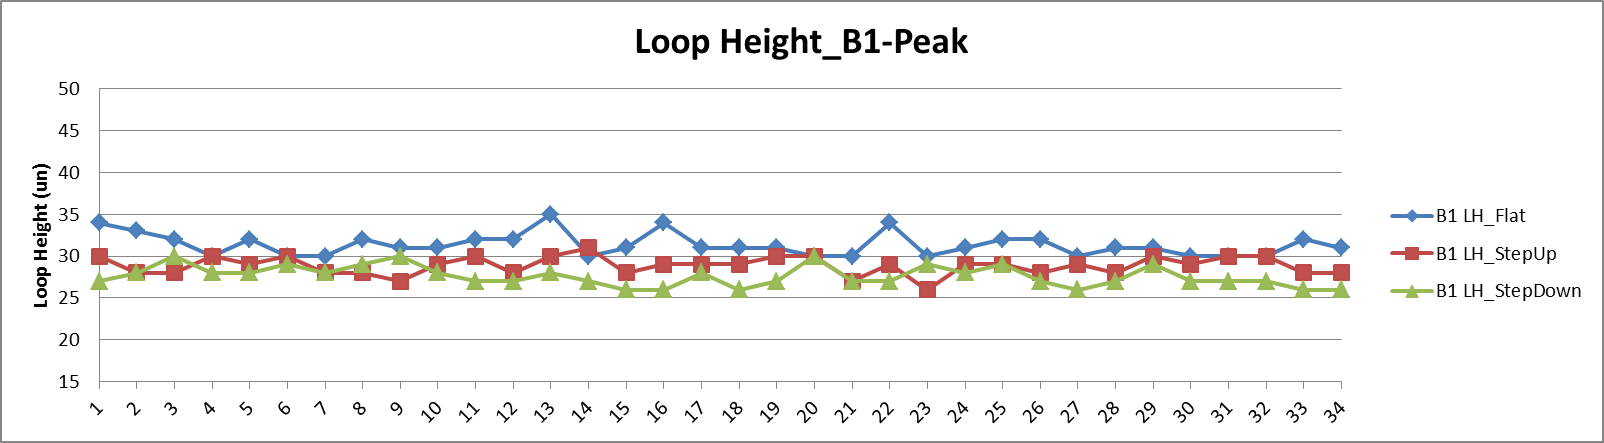 Loop_height_plot_graph.png